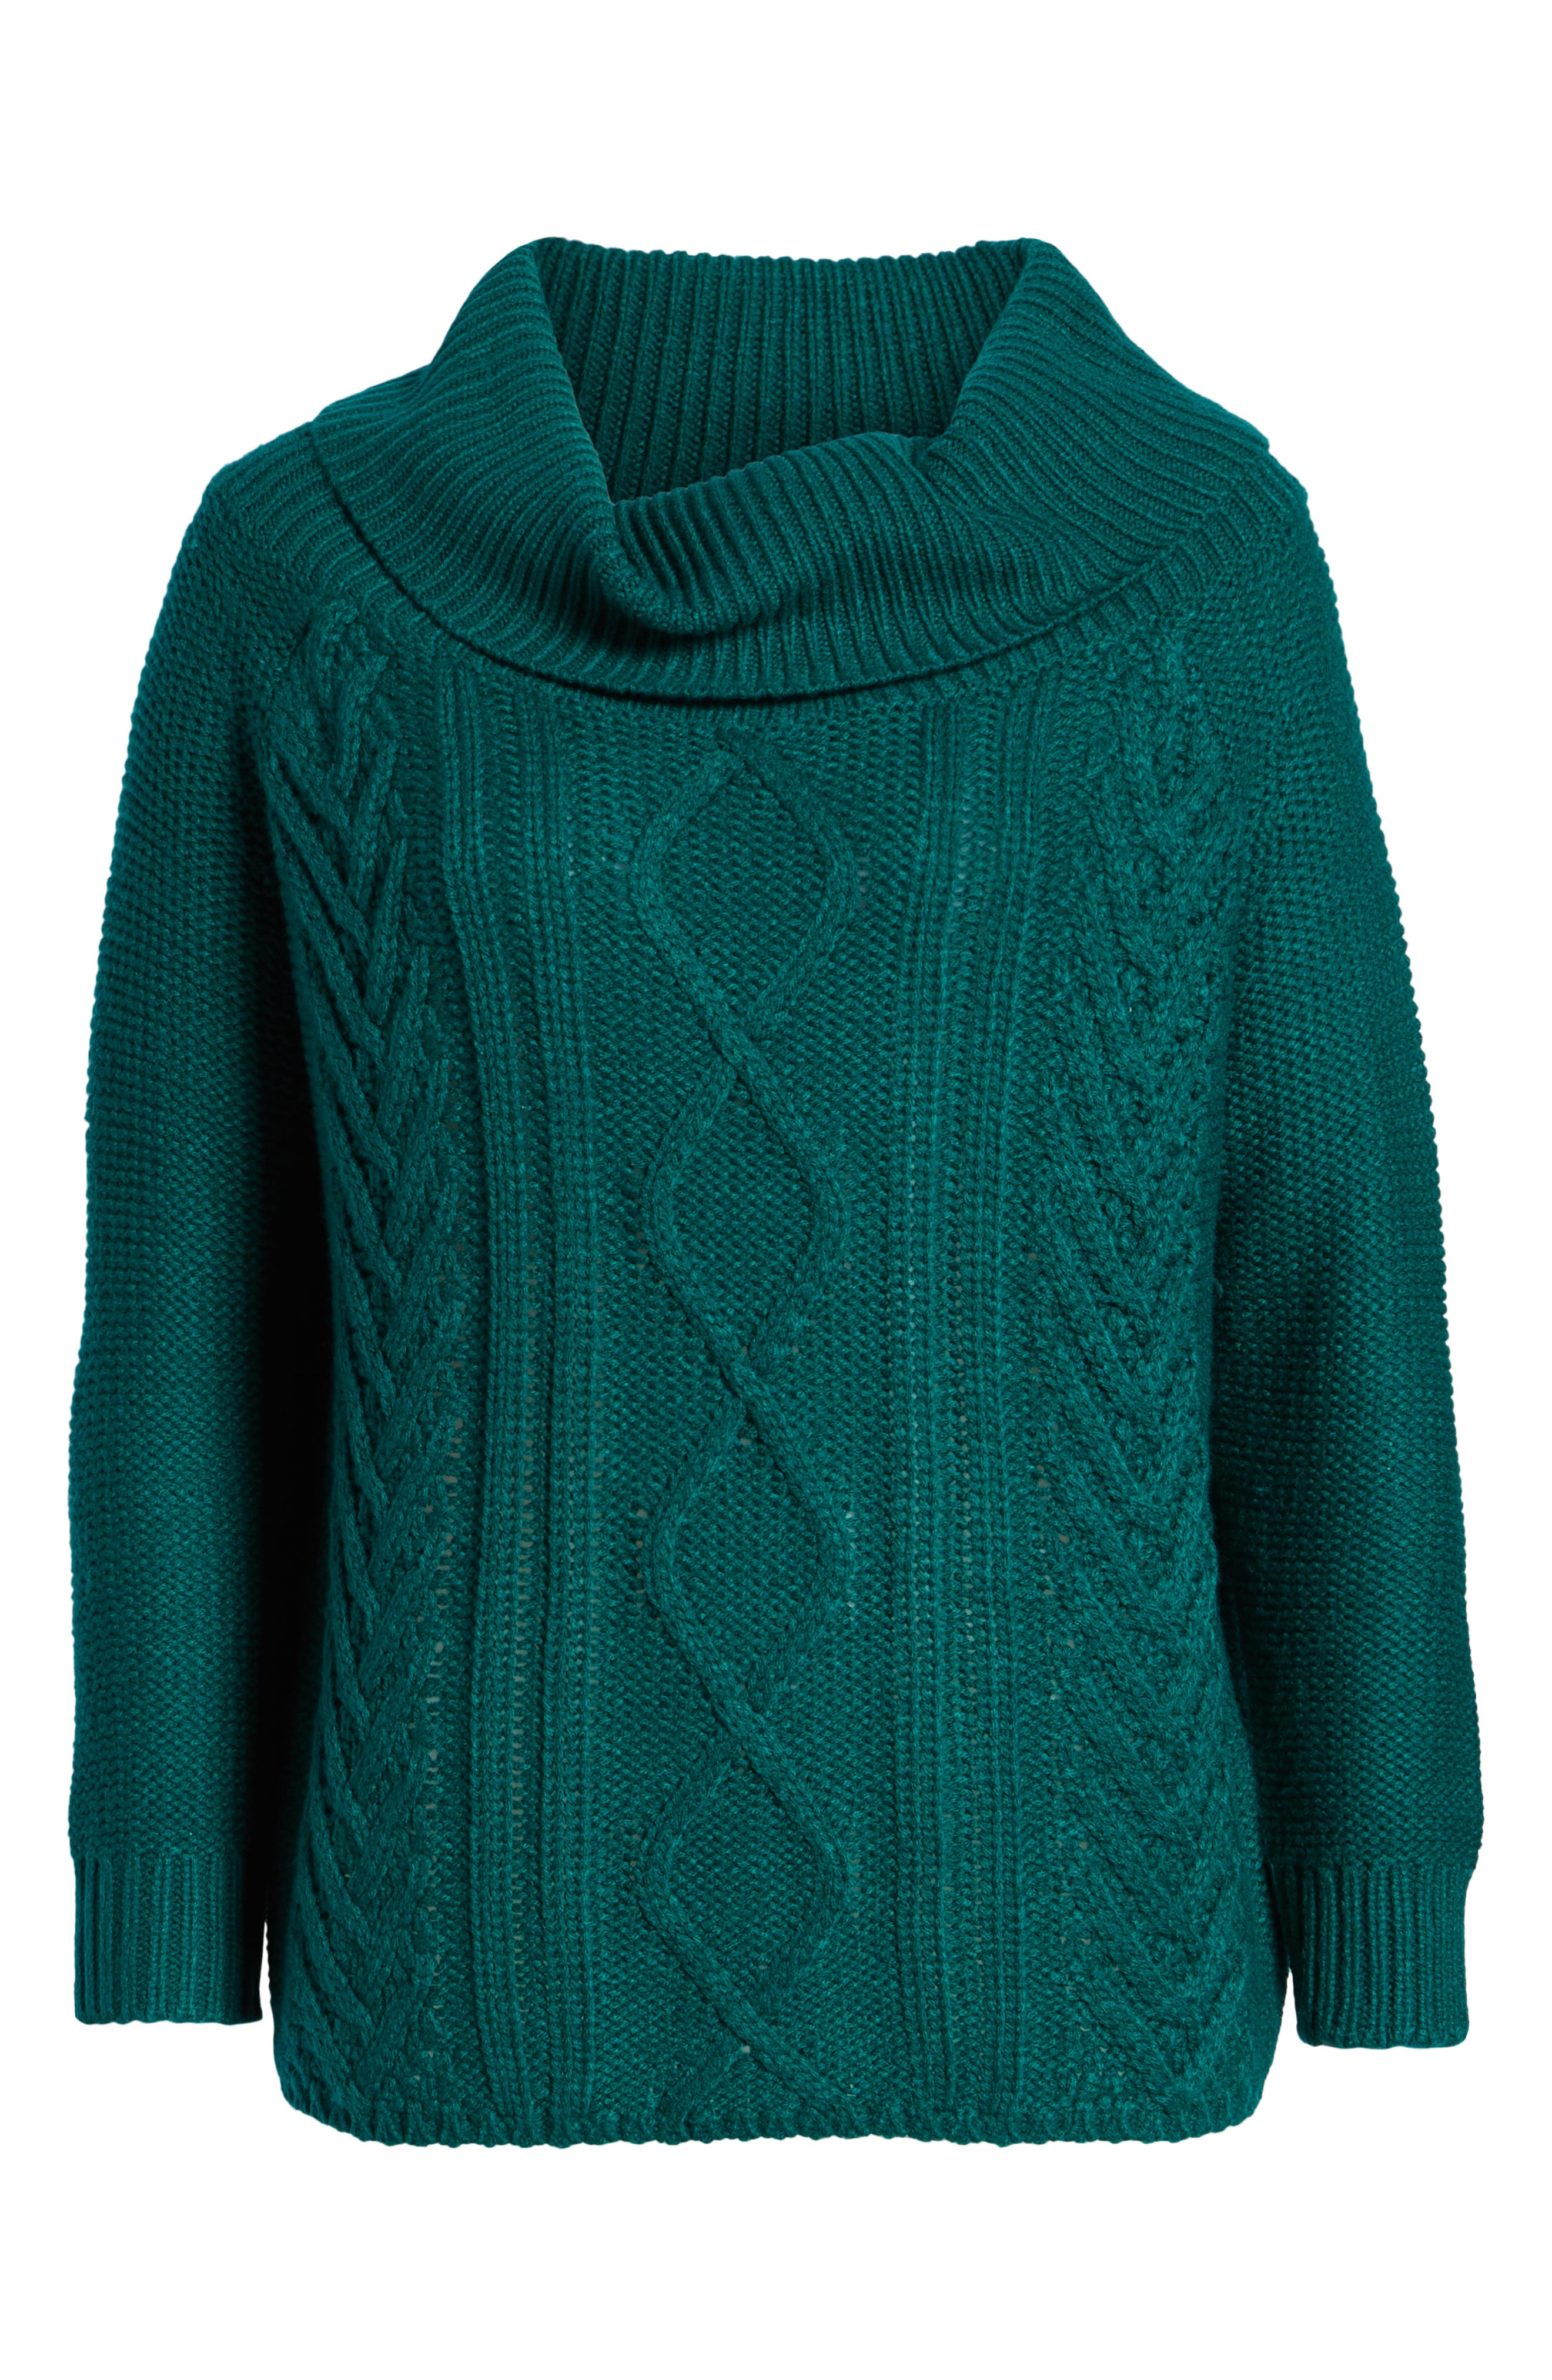 Off Shore Cable Knit Sweater,                             Alternate thumbnail 7, color,                             440